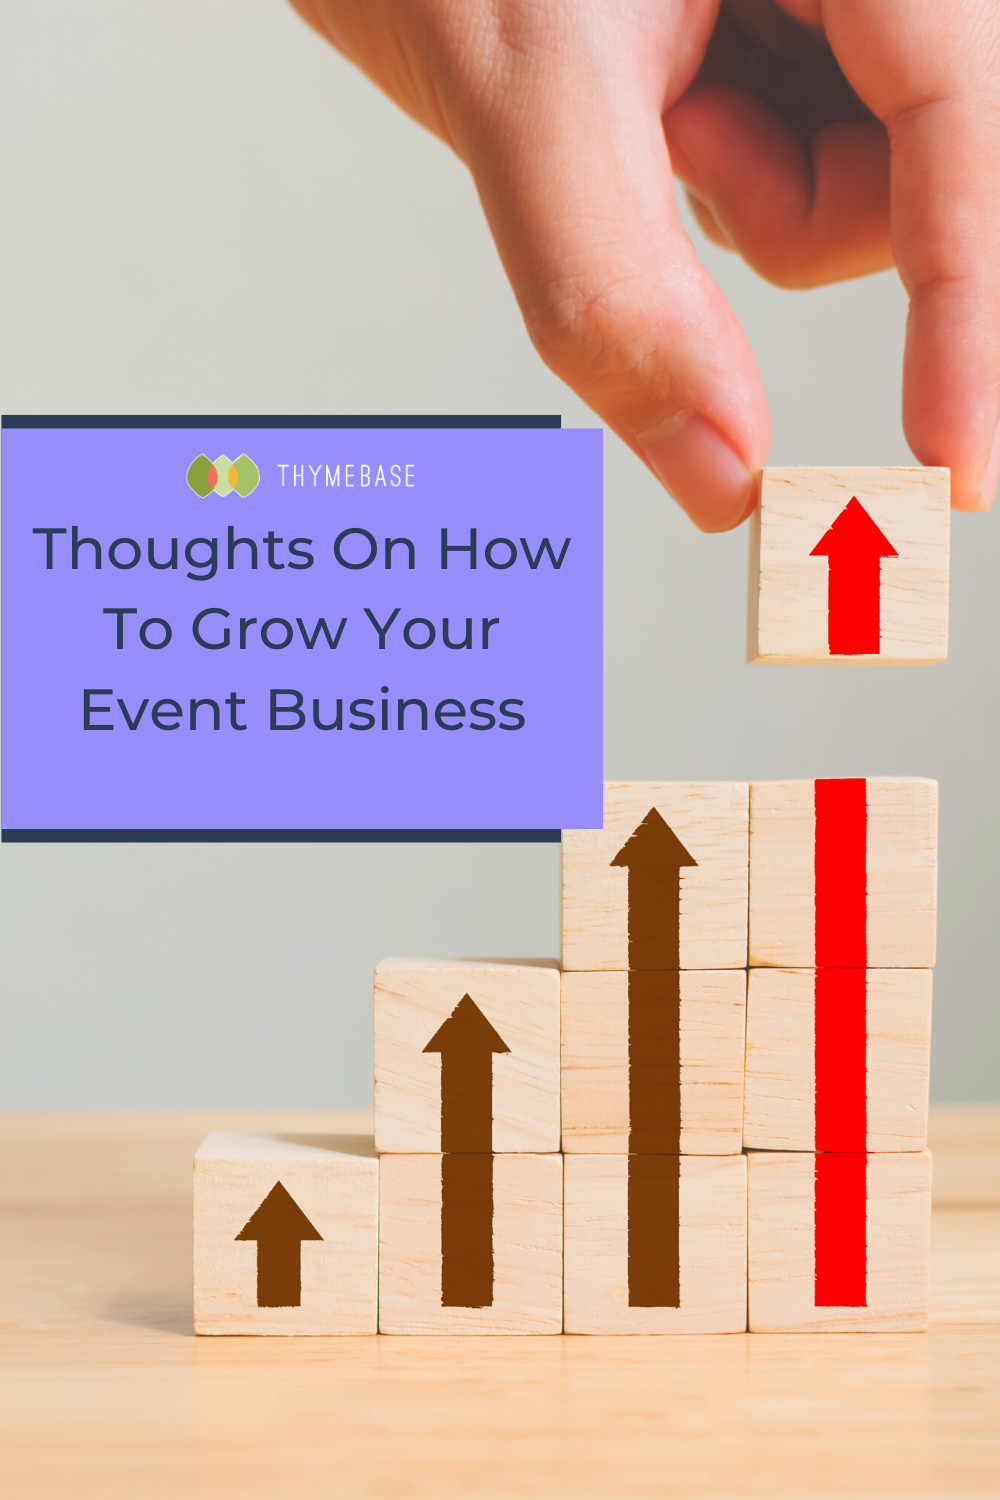 It isn't always easy to know when you're ready to grow your event business. But let's discuss some ideas that might make it easier to expand. . . . . . #eventtech #eventtechnology #eventprofs #event #eventdesign #eventmanagement #eventplanner #eventplanners #eventplanning #events #meetings #partyplanner #weddingplanner #corporateevents #thymebase